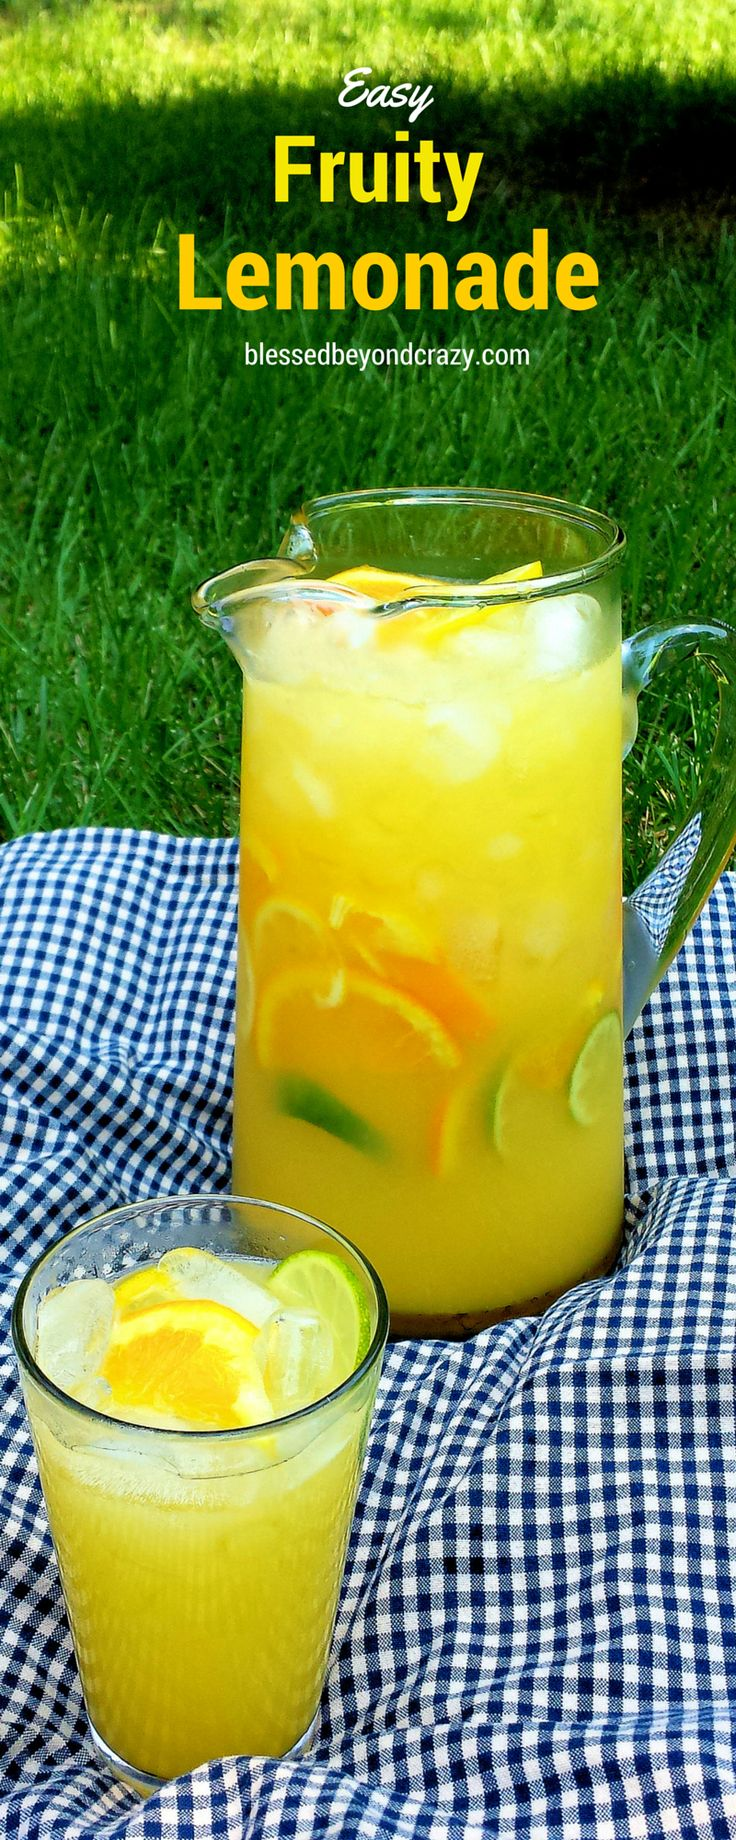 Refreshing Fruity Lemonade - non-alcoholic but you can always add some. Super easy and perfect for any picnic or party! Naturally gluten free and non-alcoholic, but you can always add a bit of liqueur and make it an adult drink. #blessedbeyondcrazy #lemonade